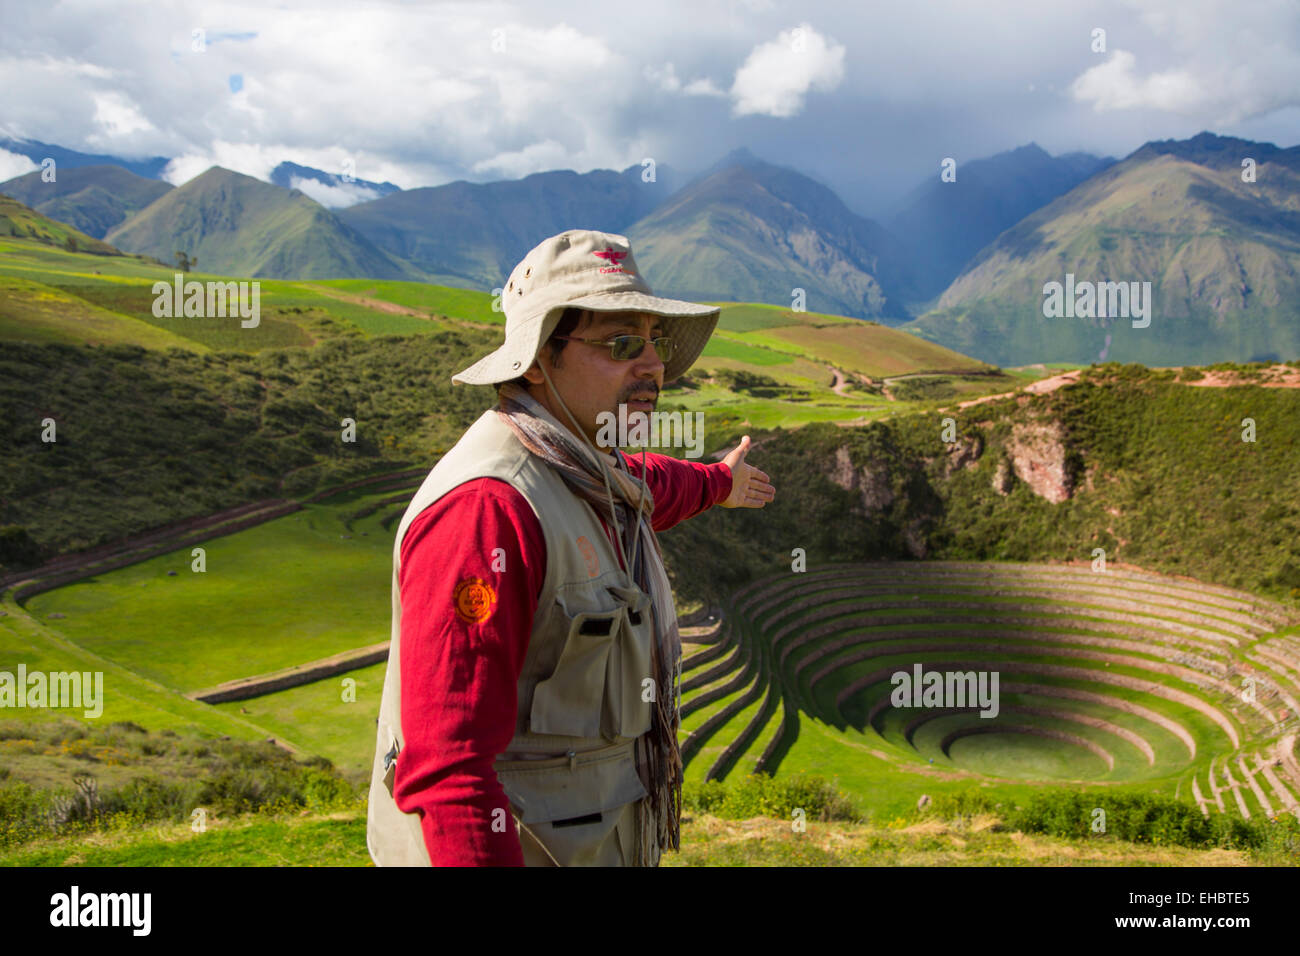 Circular Inca terraces of Moray,  Cusco Region, Urubamba Province, Machupicchu District, Peru - Stock Image